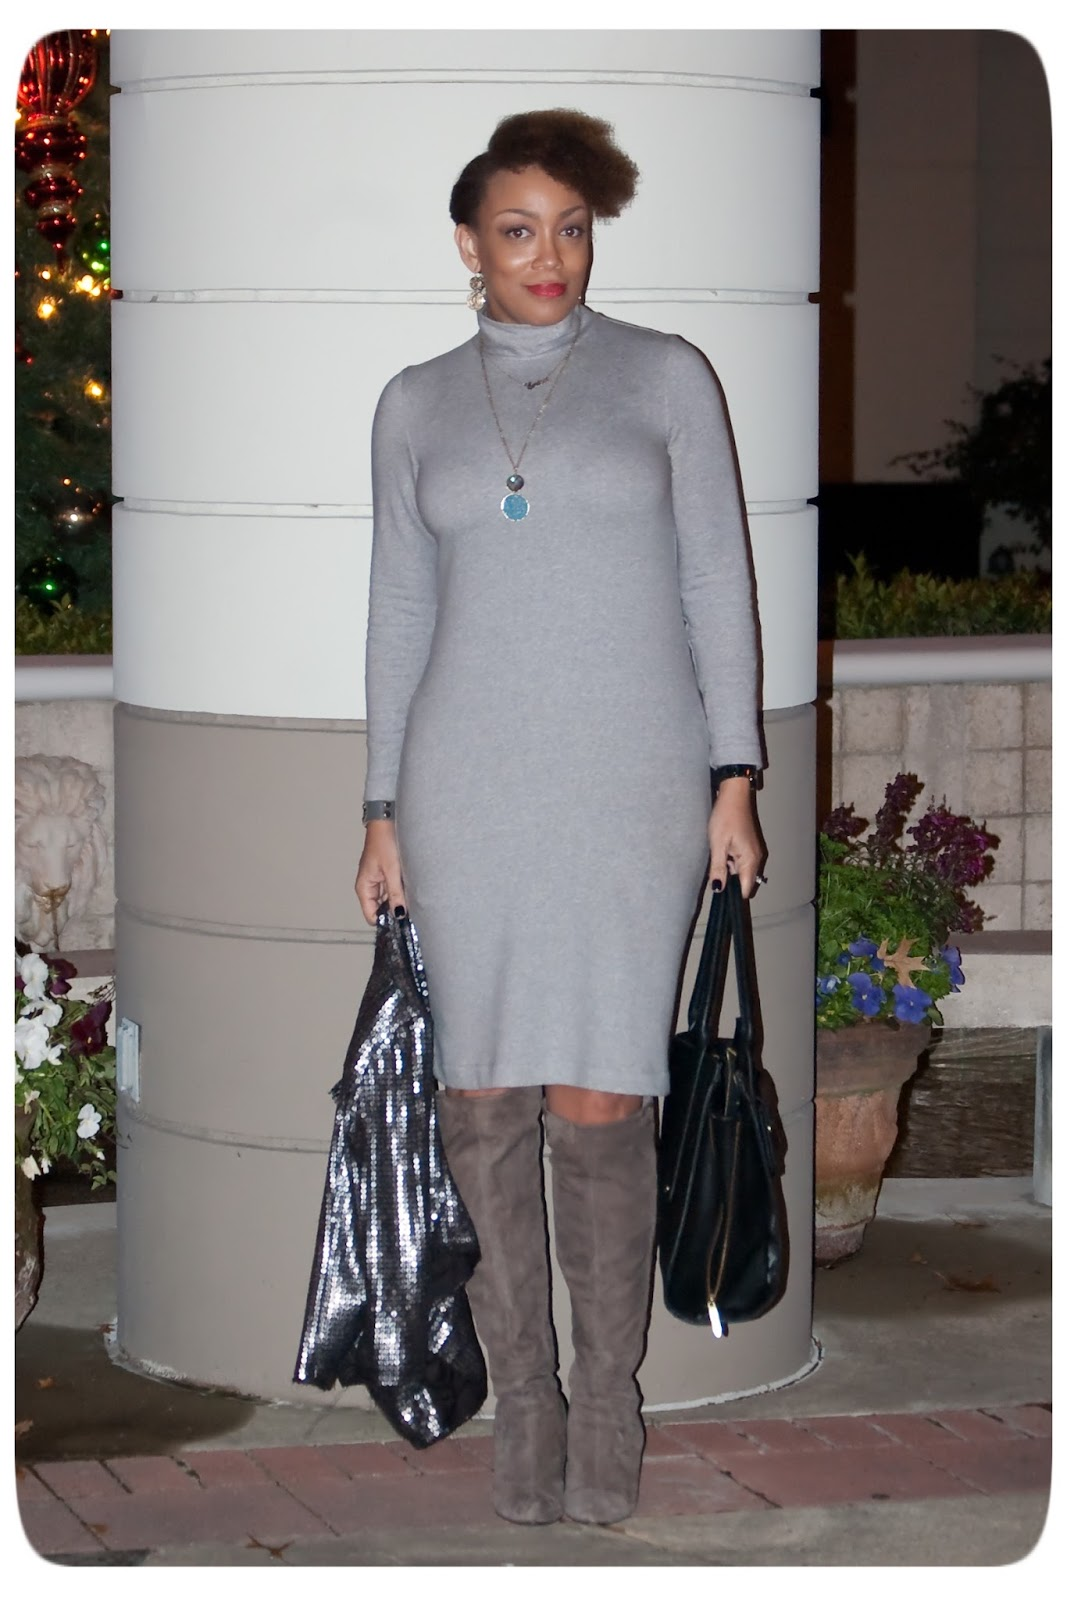 Vogue 8939 - Heathered Gray Jersey Knit Turtleneck Dress - Erica B's DIY Style!